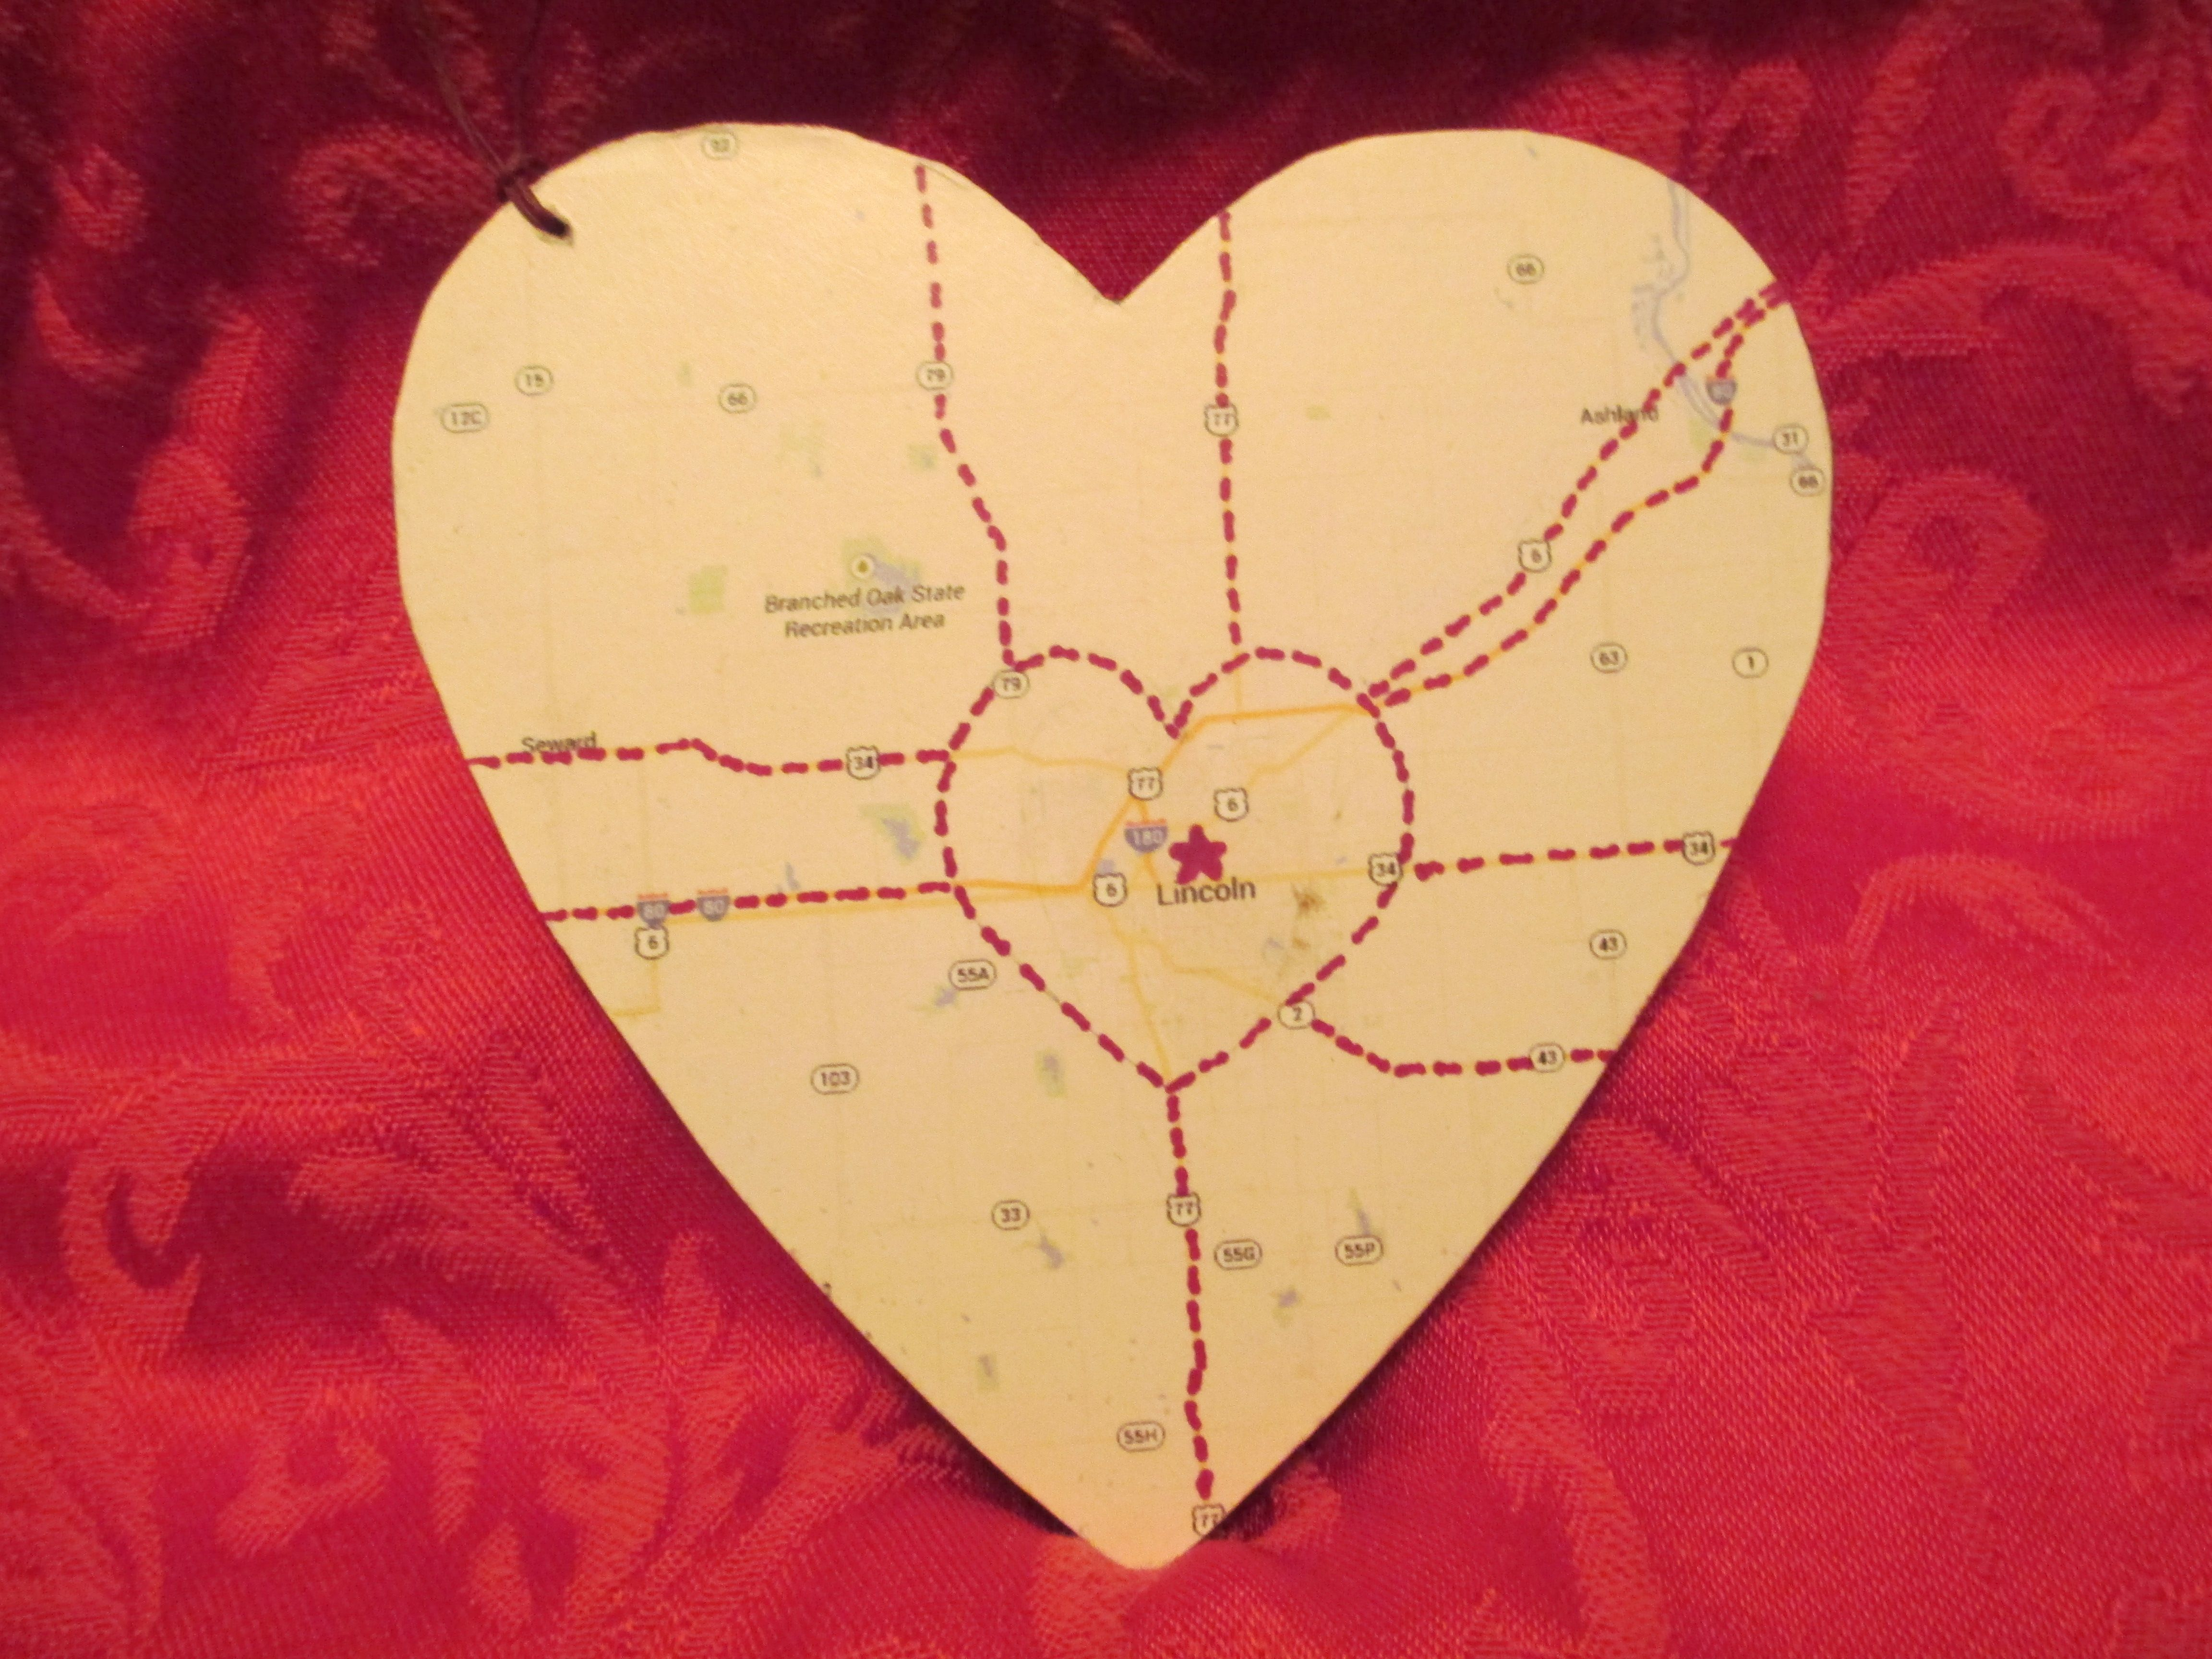 All roads lead to Lincoln.... on wooden heart